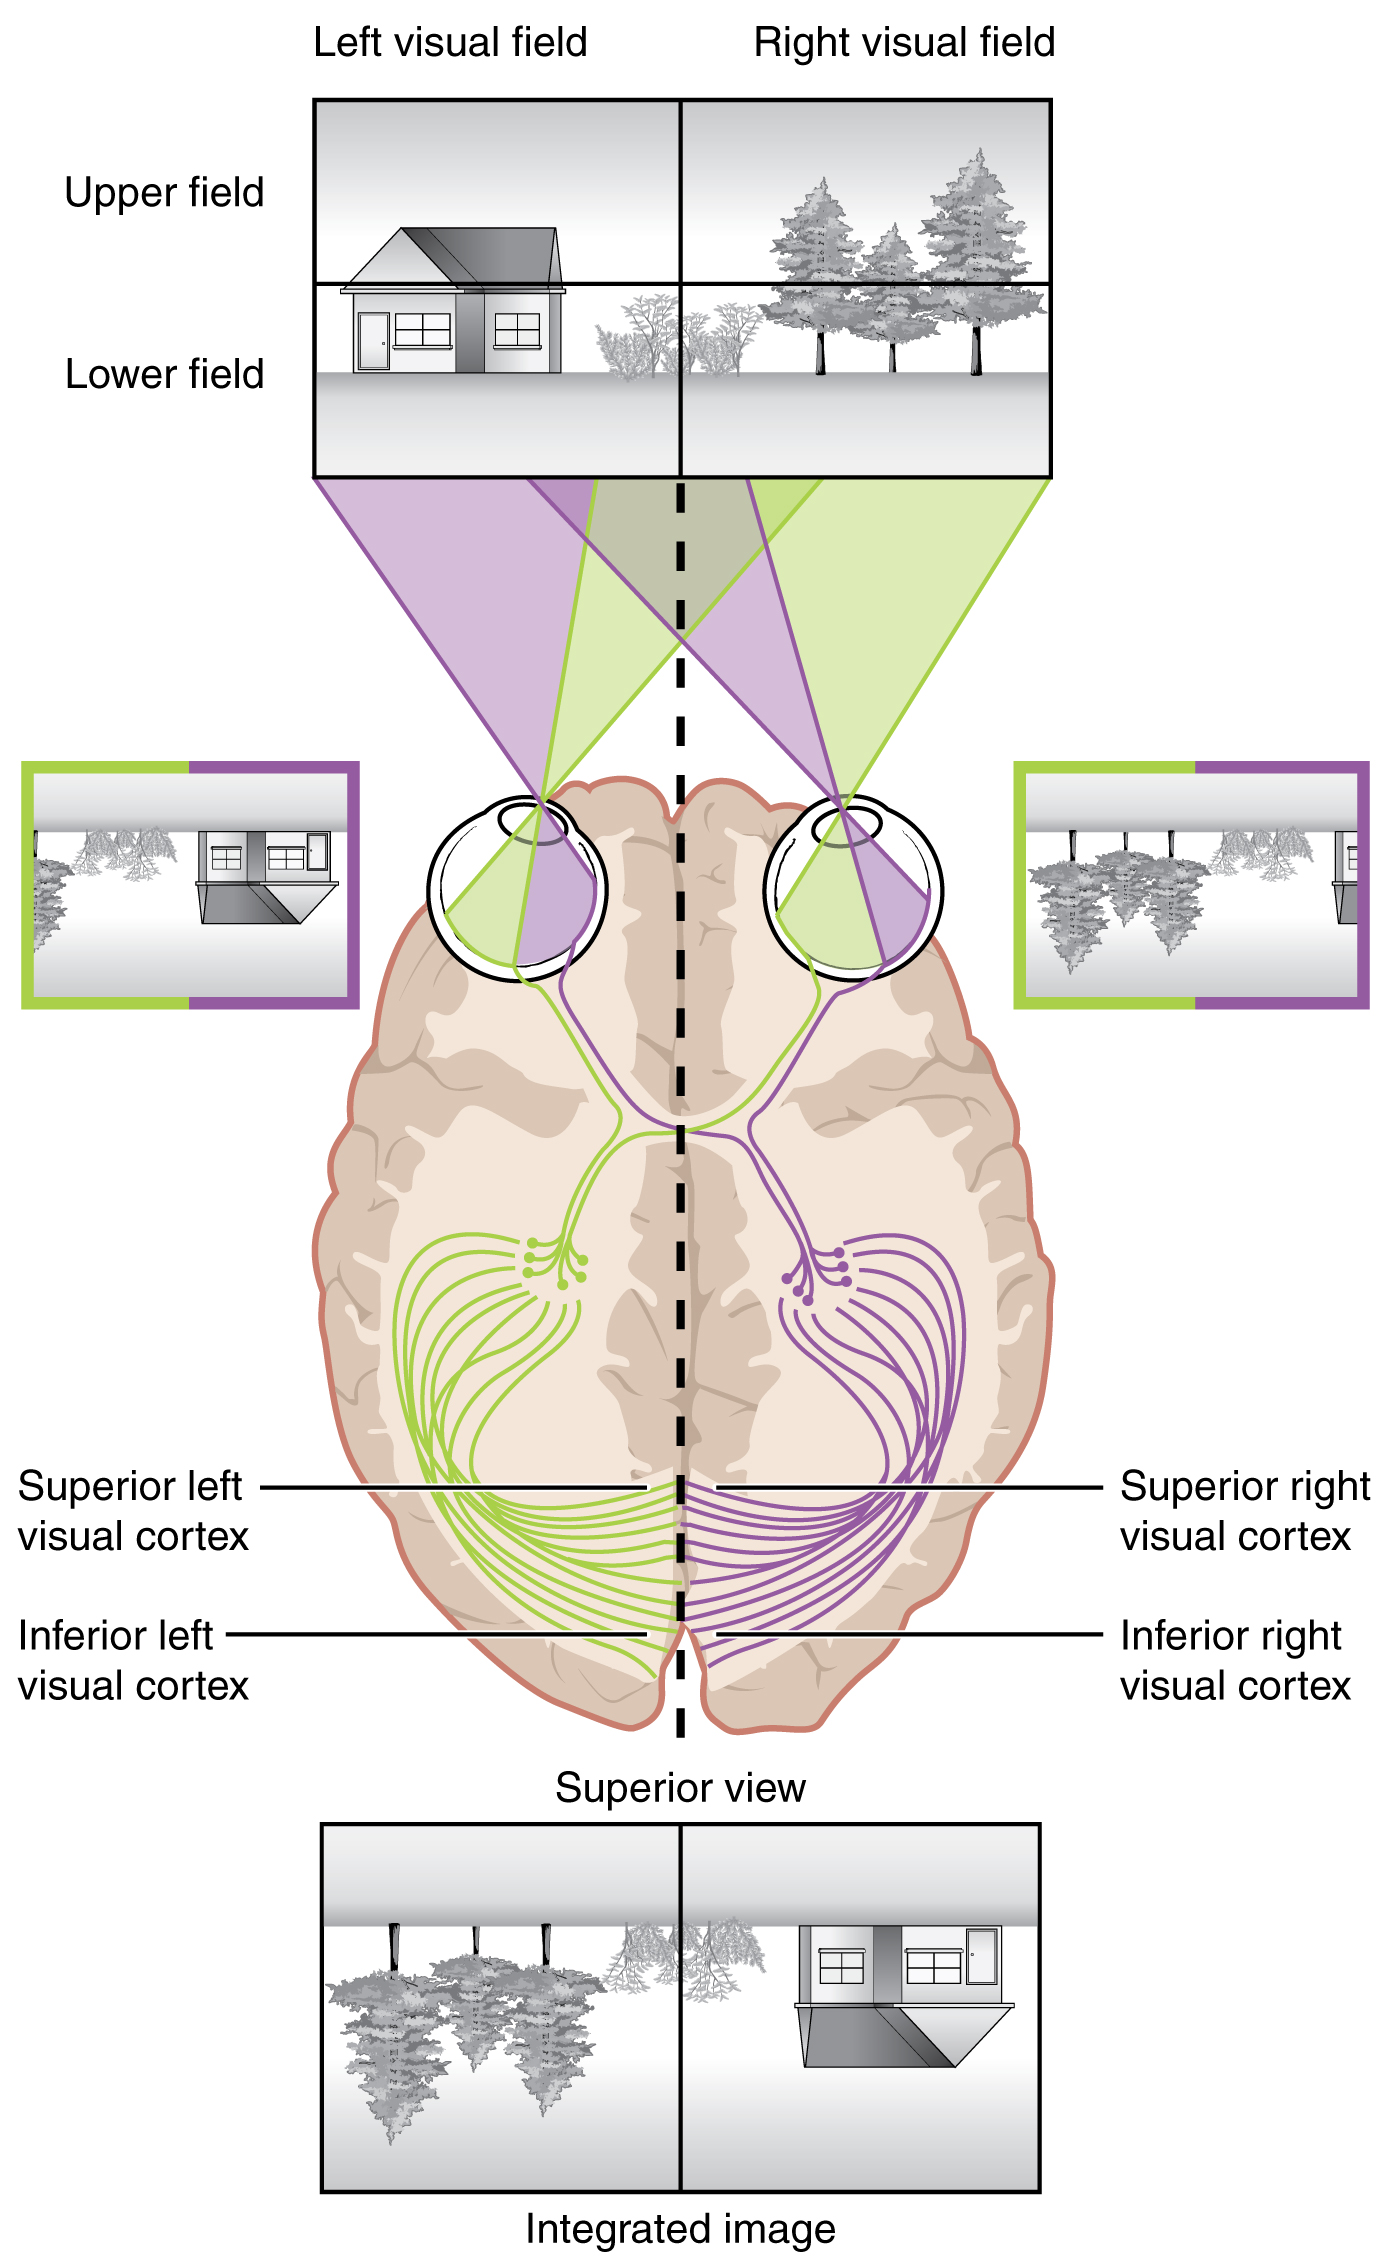 This image shows the mapping of the right and left visual fields on the brain. It also explains how the brain merges images from both visual fields.